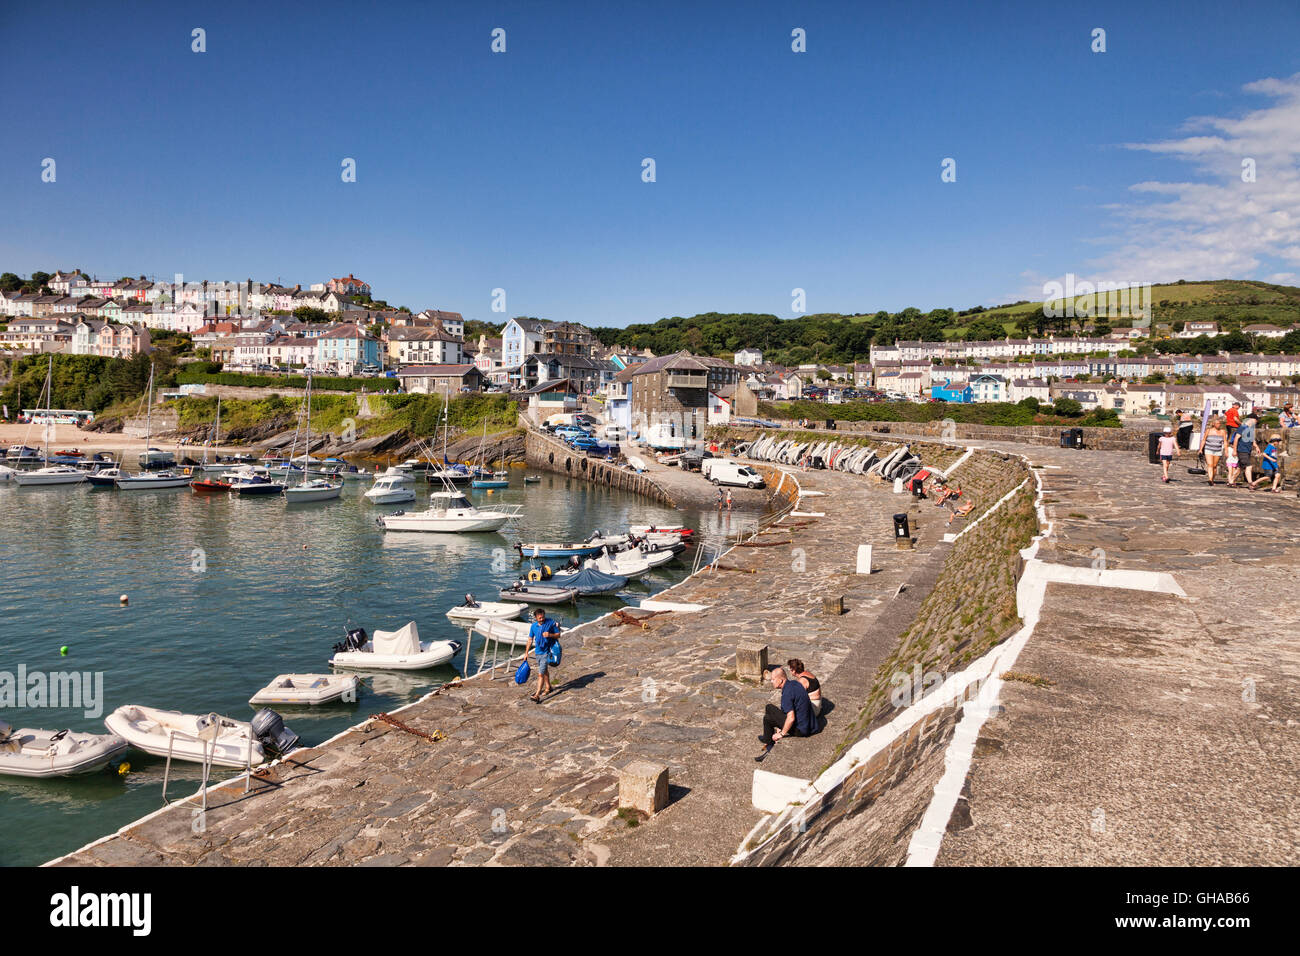 Harbour and sea wall at New Quay, Ceredigion, Wales, UK - Stock Image